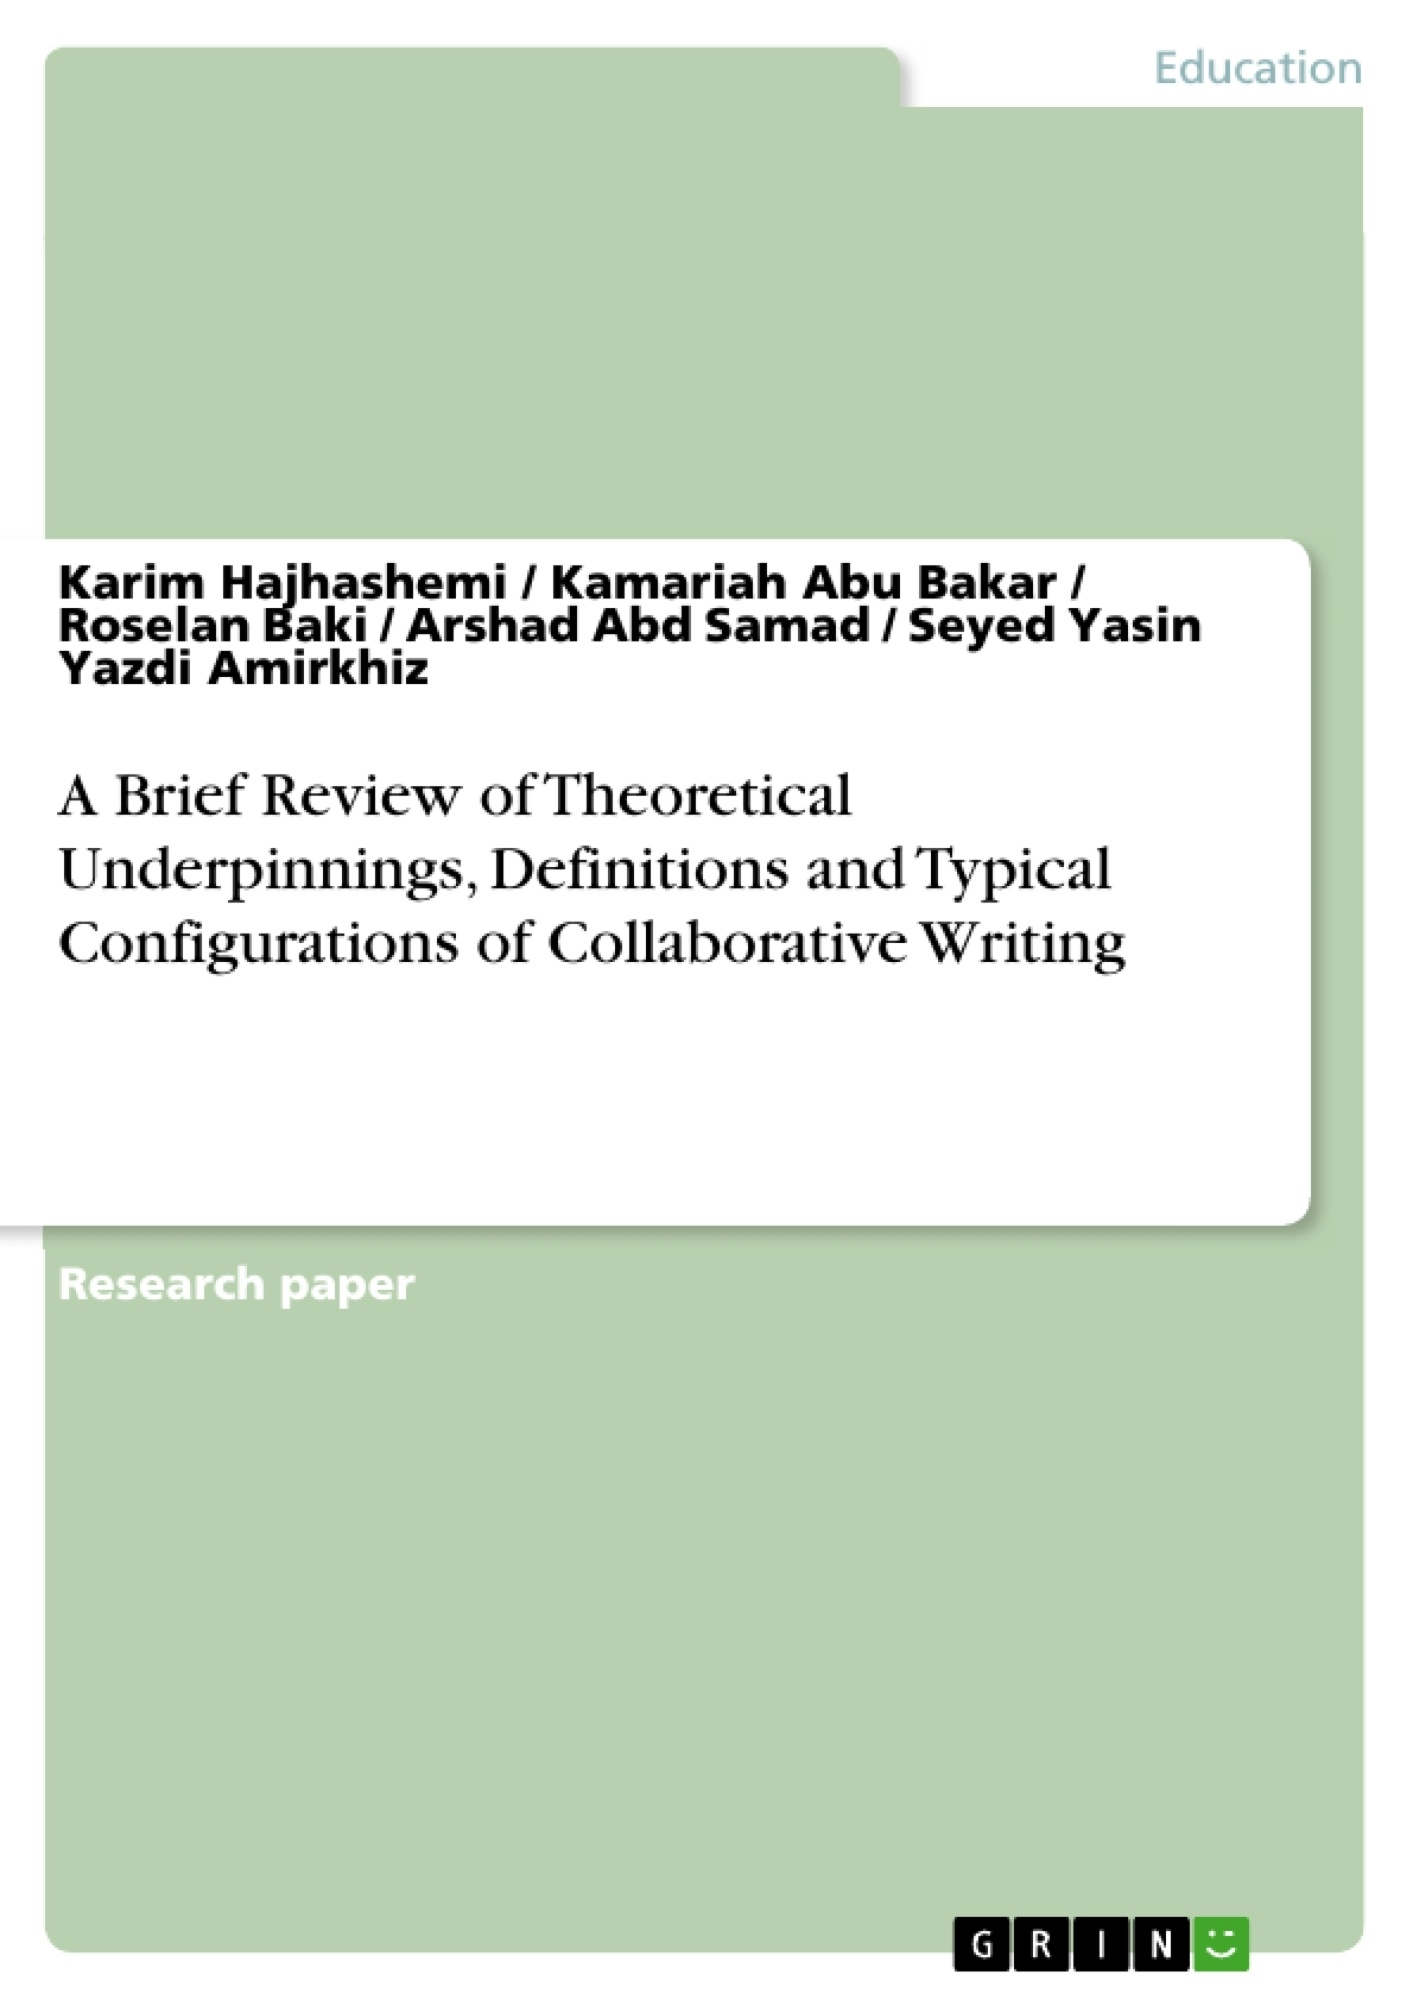 Title: A Brief Review of Theoretical Underpinnings, Definitions and Typical Configurations of Collaborative Writing